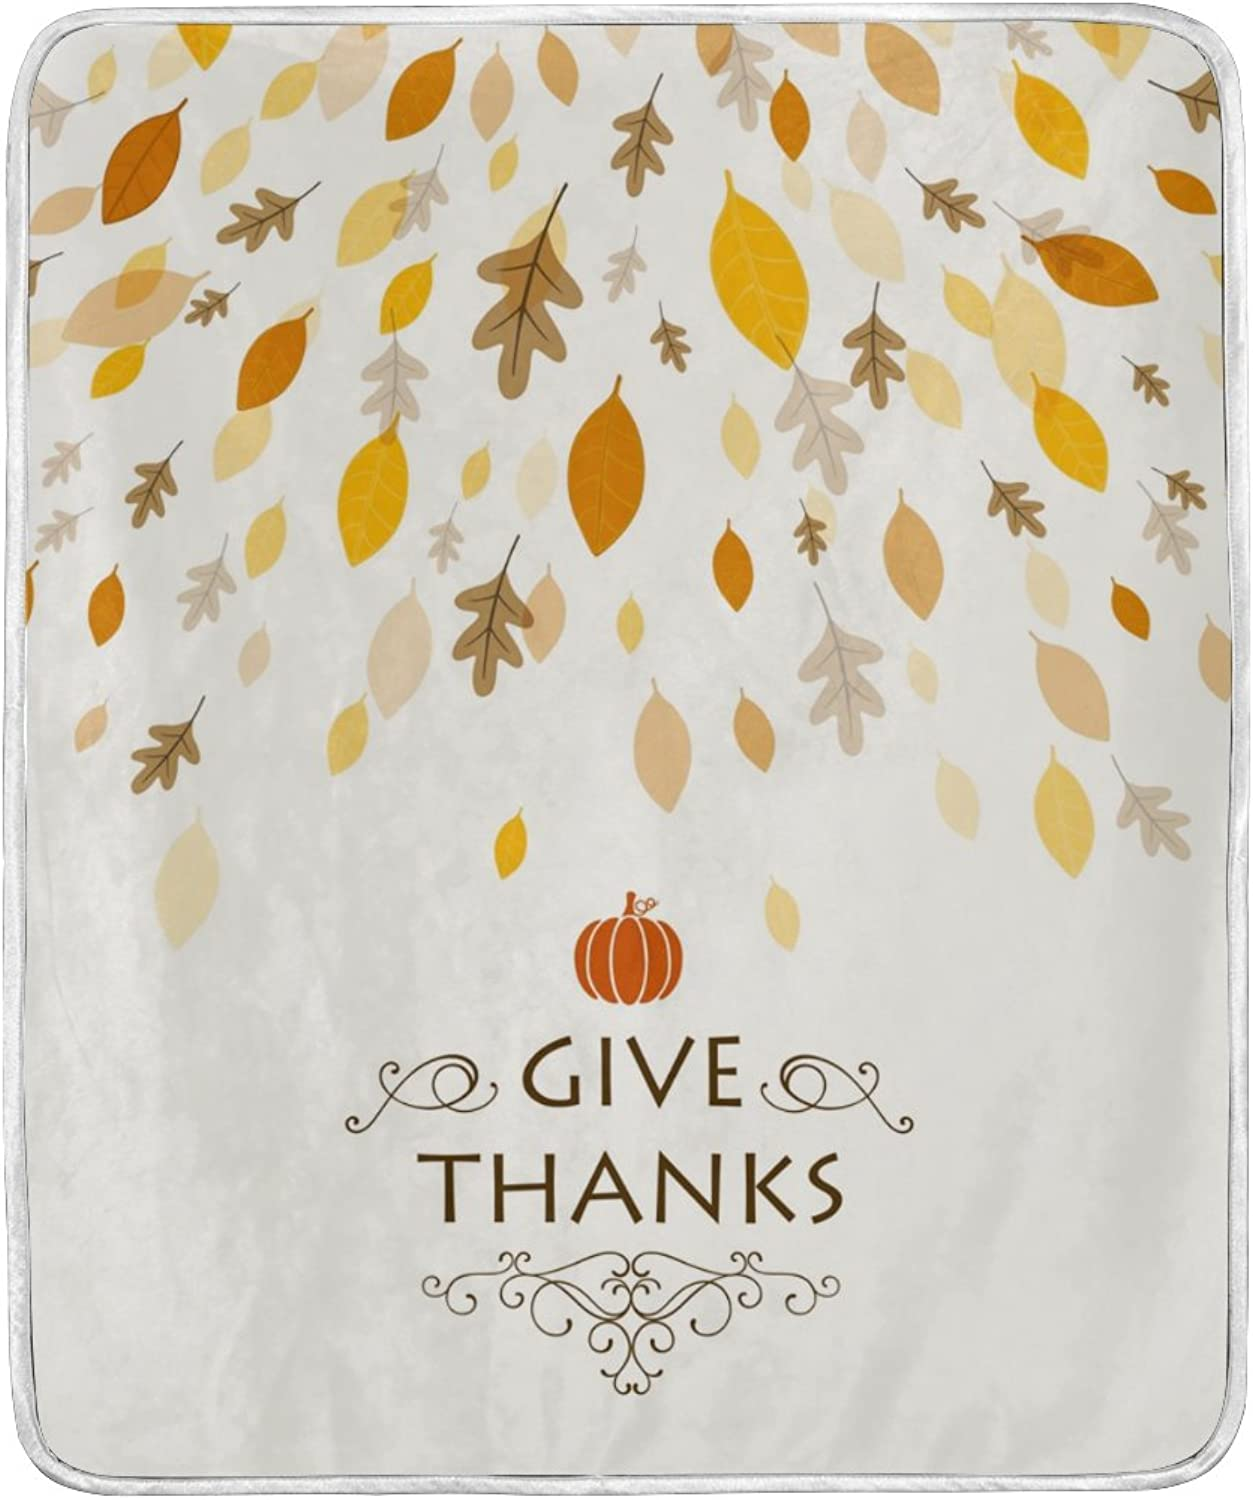 U LIFE Thanksgiving Day Turkey Pumpkin Soft Fleece Throw Blanket Blankets for Nap Couch Bed Kids Adults 50 x 60 inch